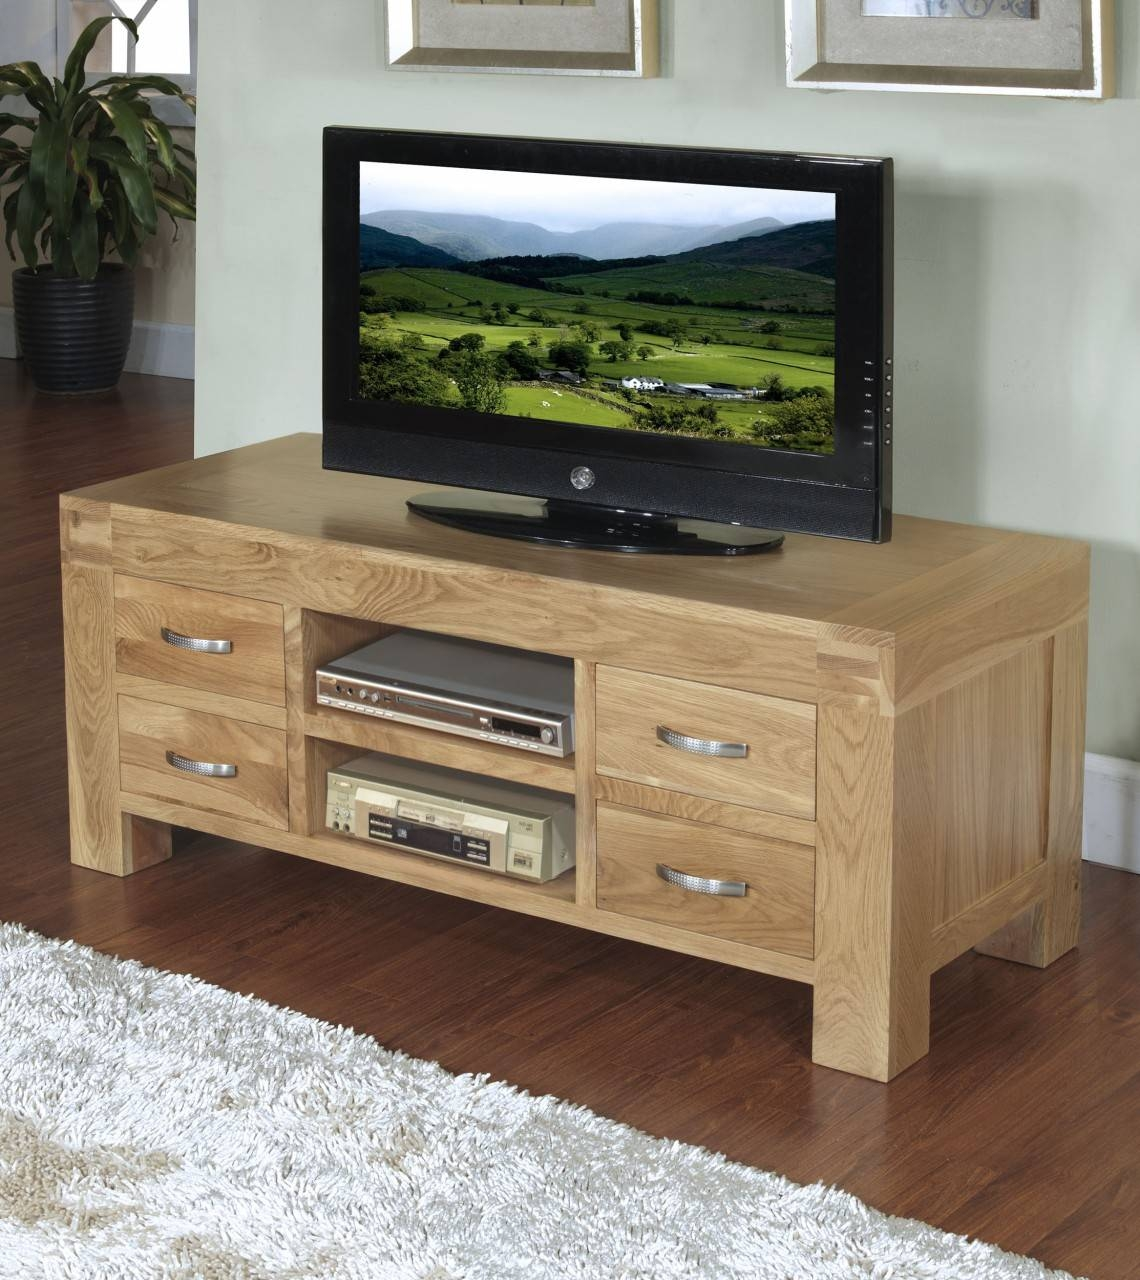 Rivermead Solid Oak Modern Furniture Widescreen Tv Cabinet Stand throughout Widescreen Tv Cabinets (Image 13 of 15)